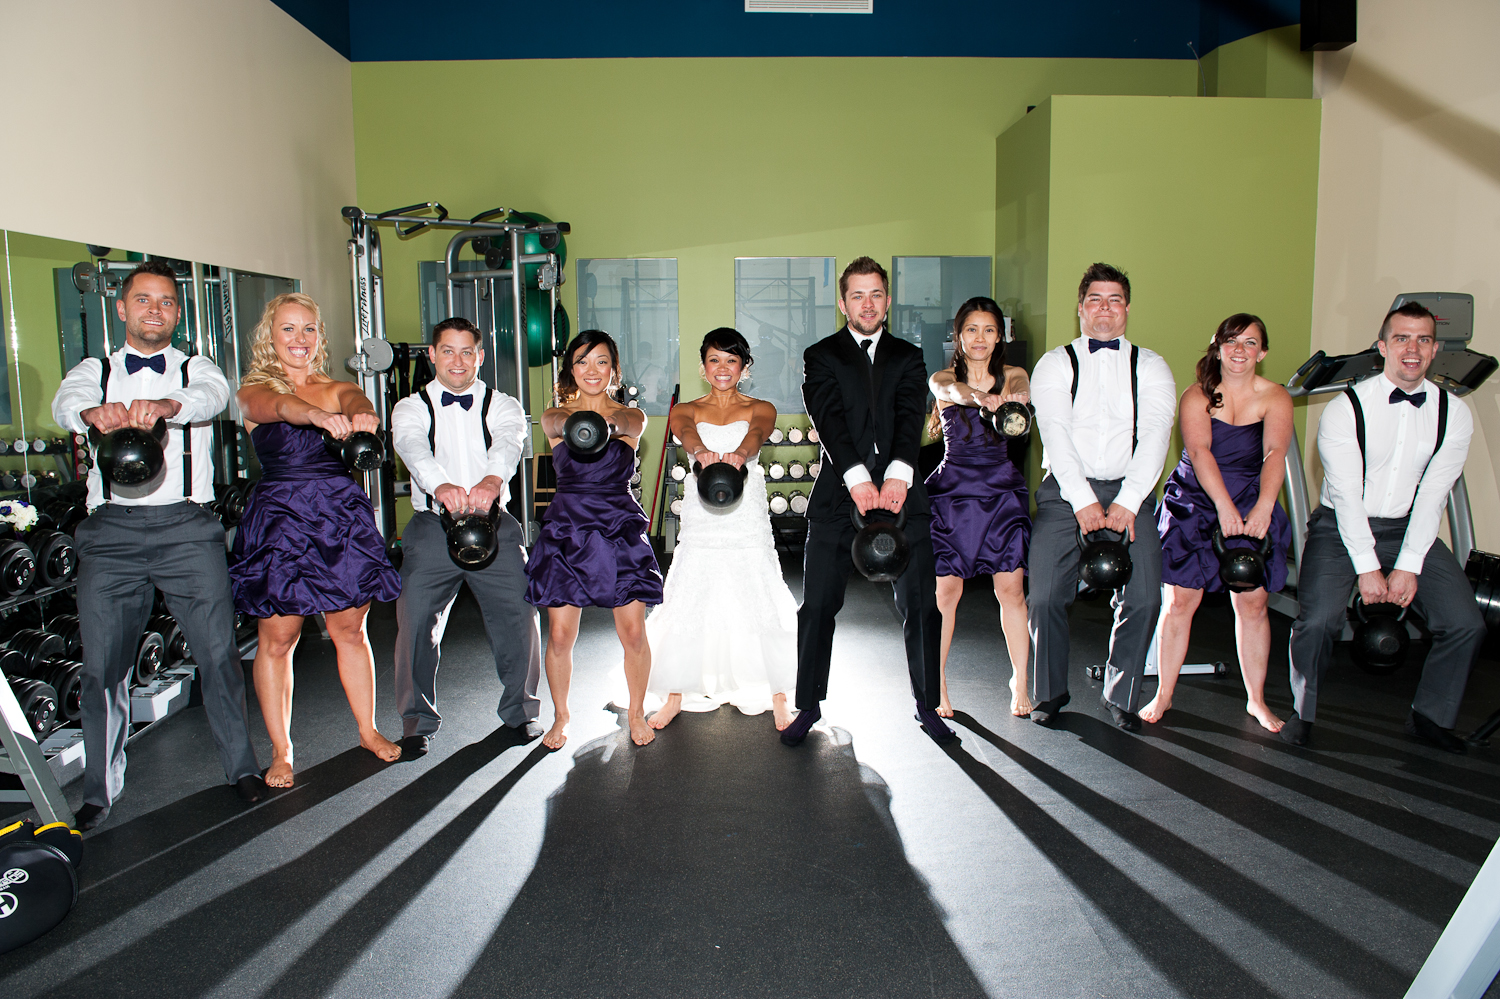 sean-williams-wedding-lifestyle-photography-edmonton-photographer-professional-17.jpg